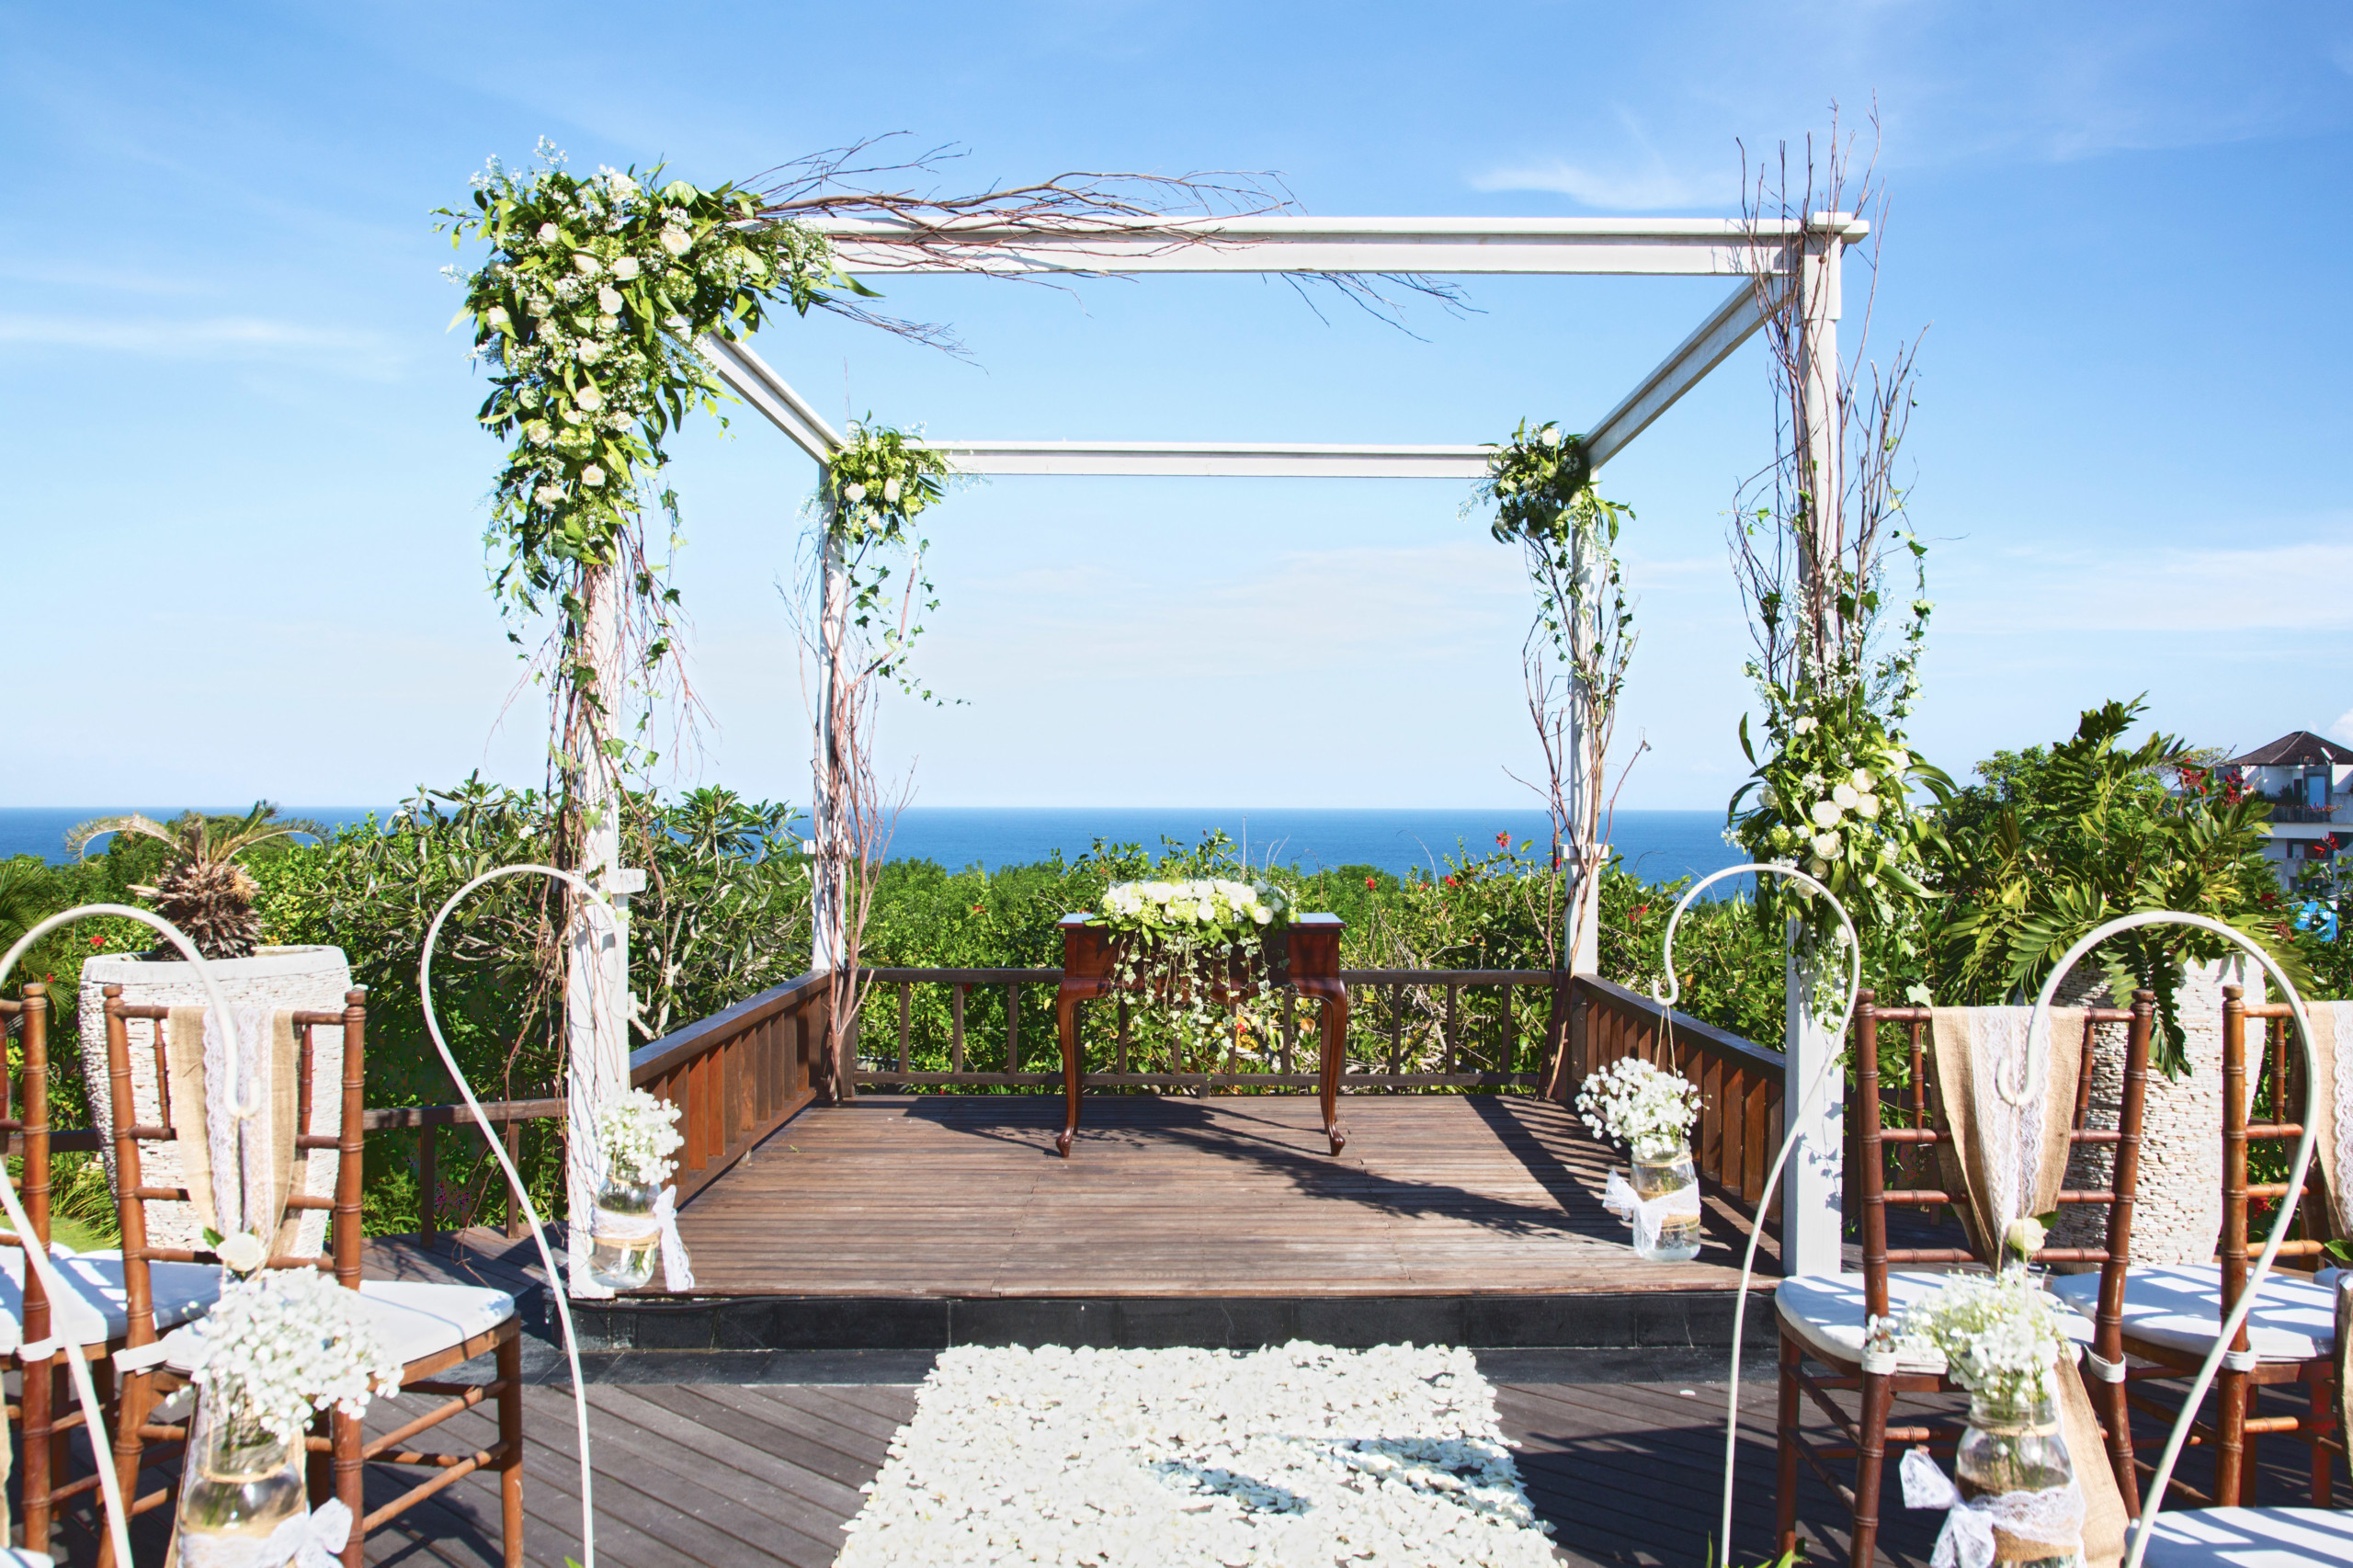 bali villa wedding ocean view